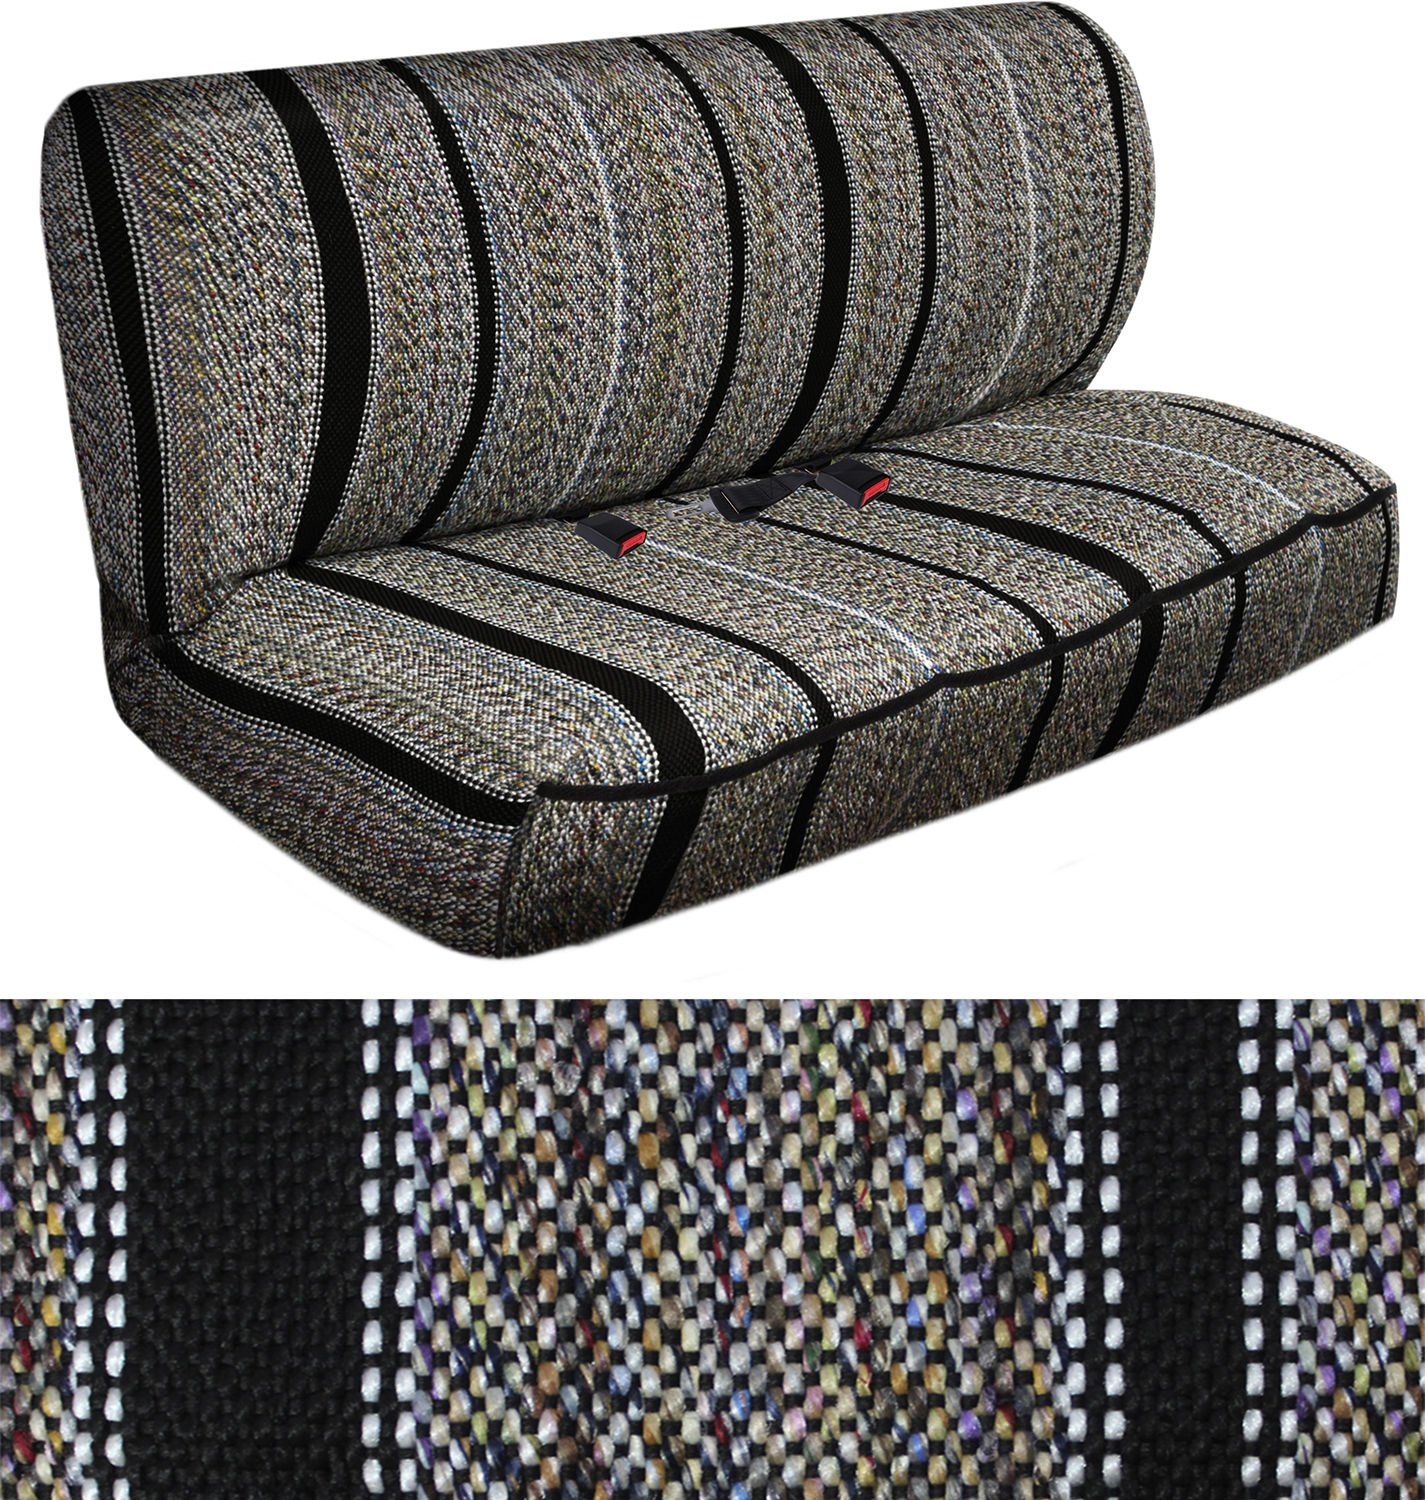 Car Seat Covers Black Western Woven Saddle Blanket 2pc